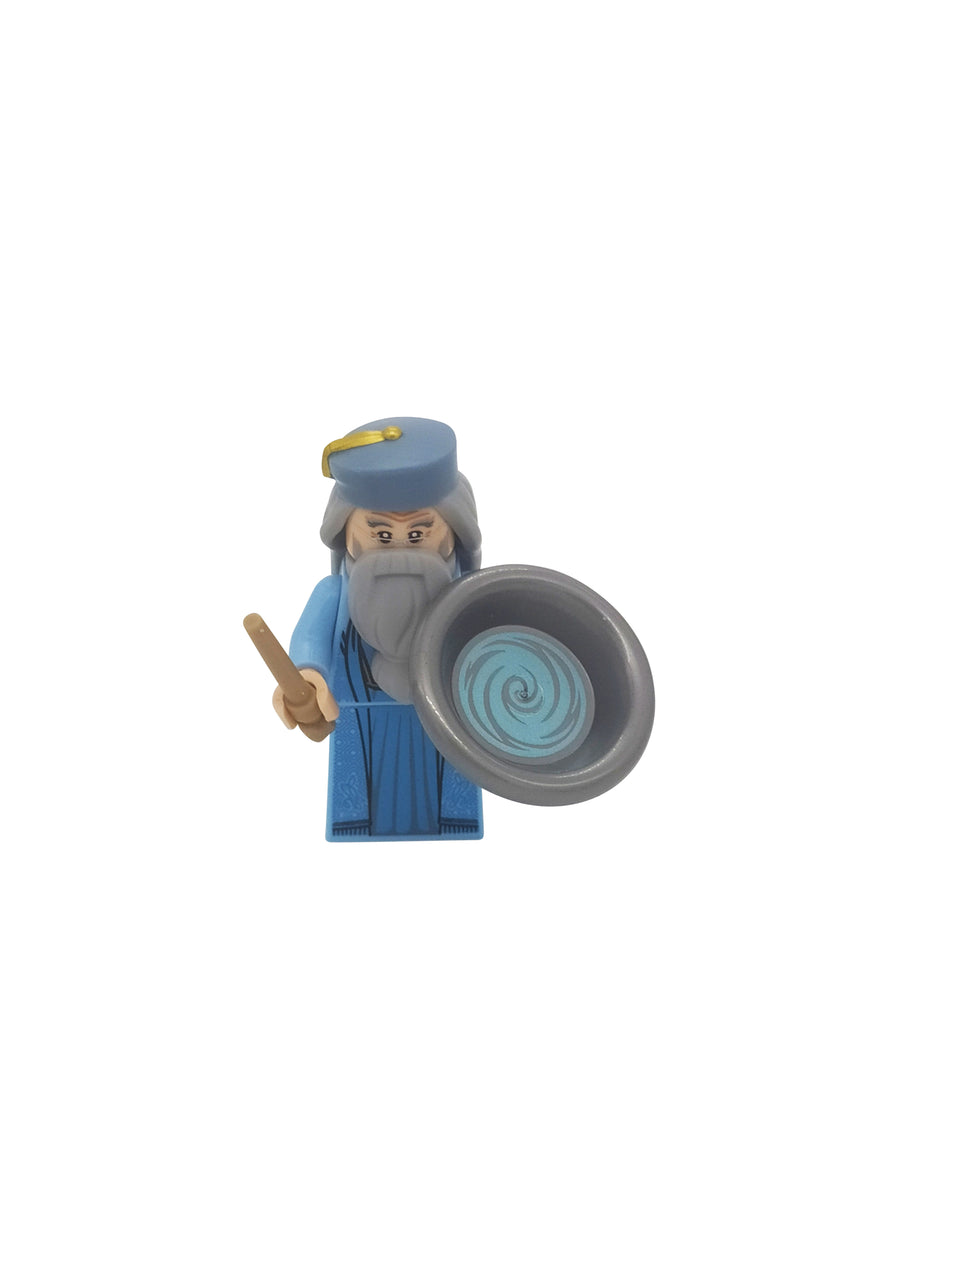 LEGO Harry Potter Series -  minifigure Professor Albus Dumbledore - 71022